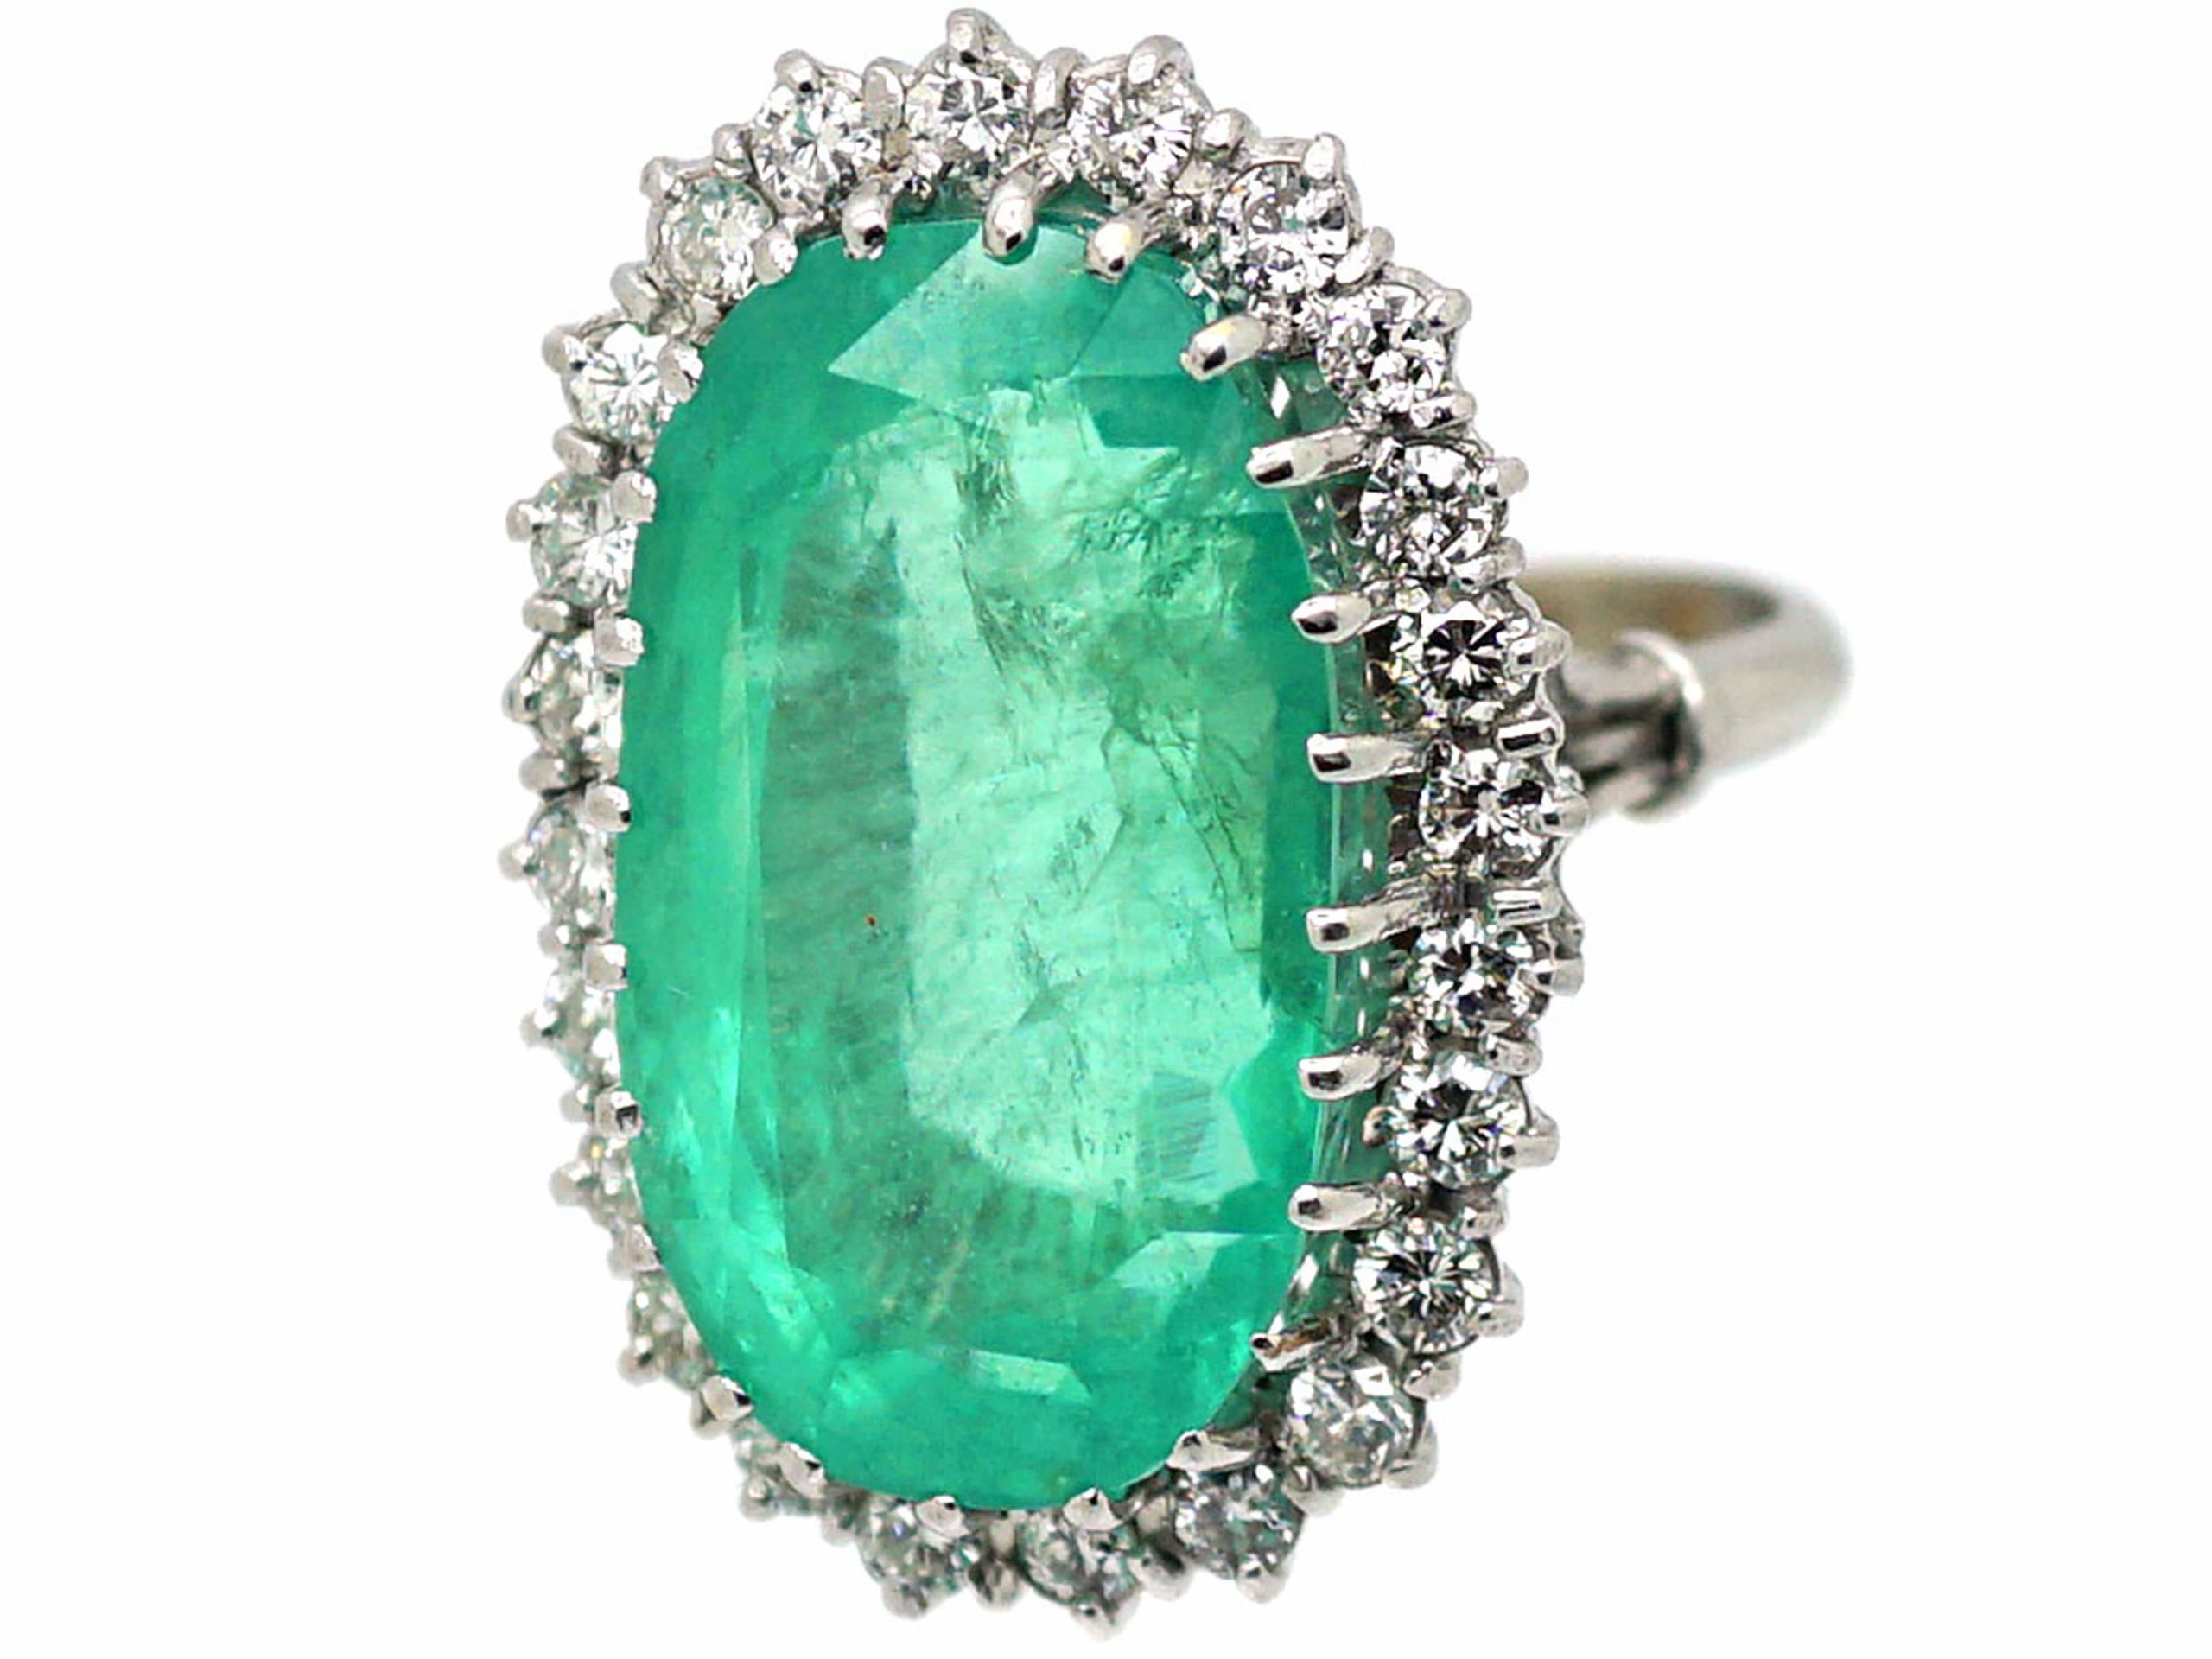 18ct White Gold Large Emerald & Diamond Cluster Ring